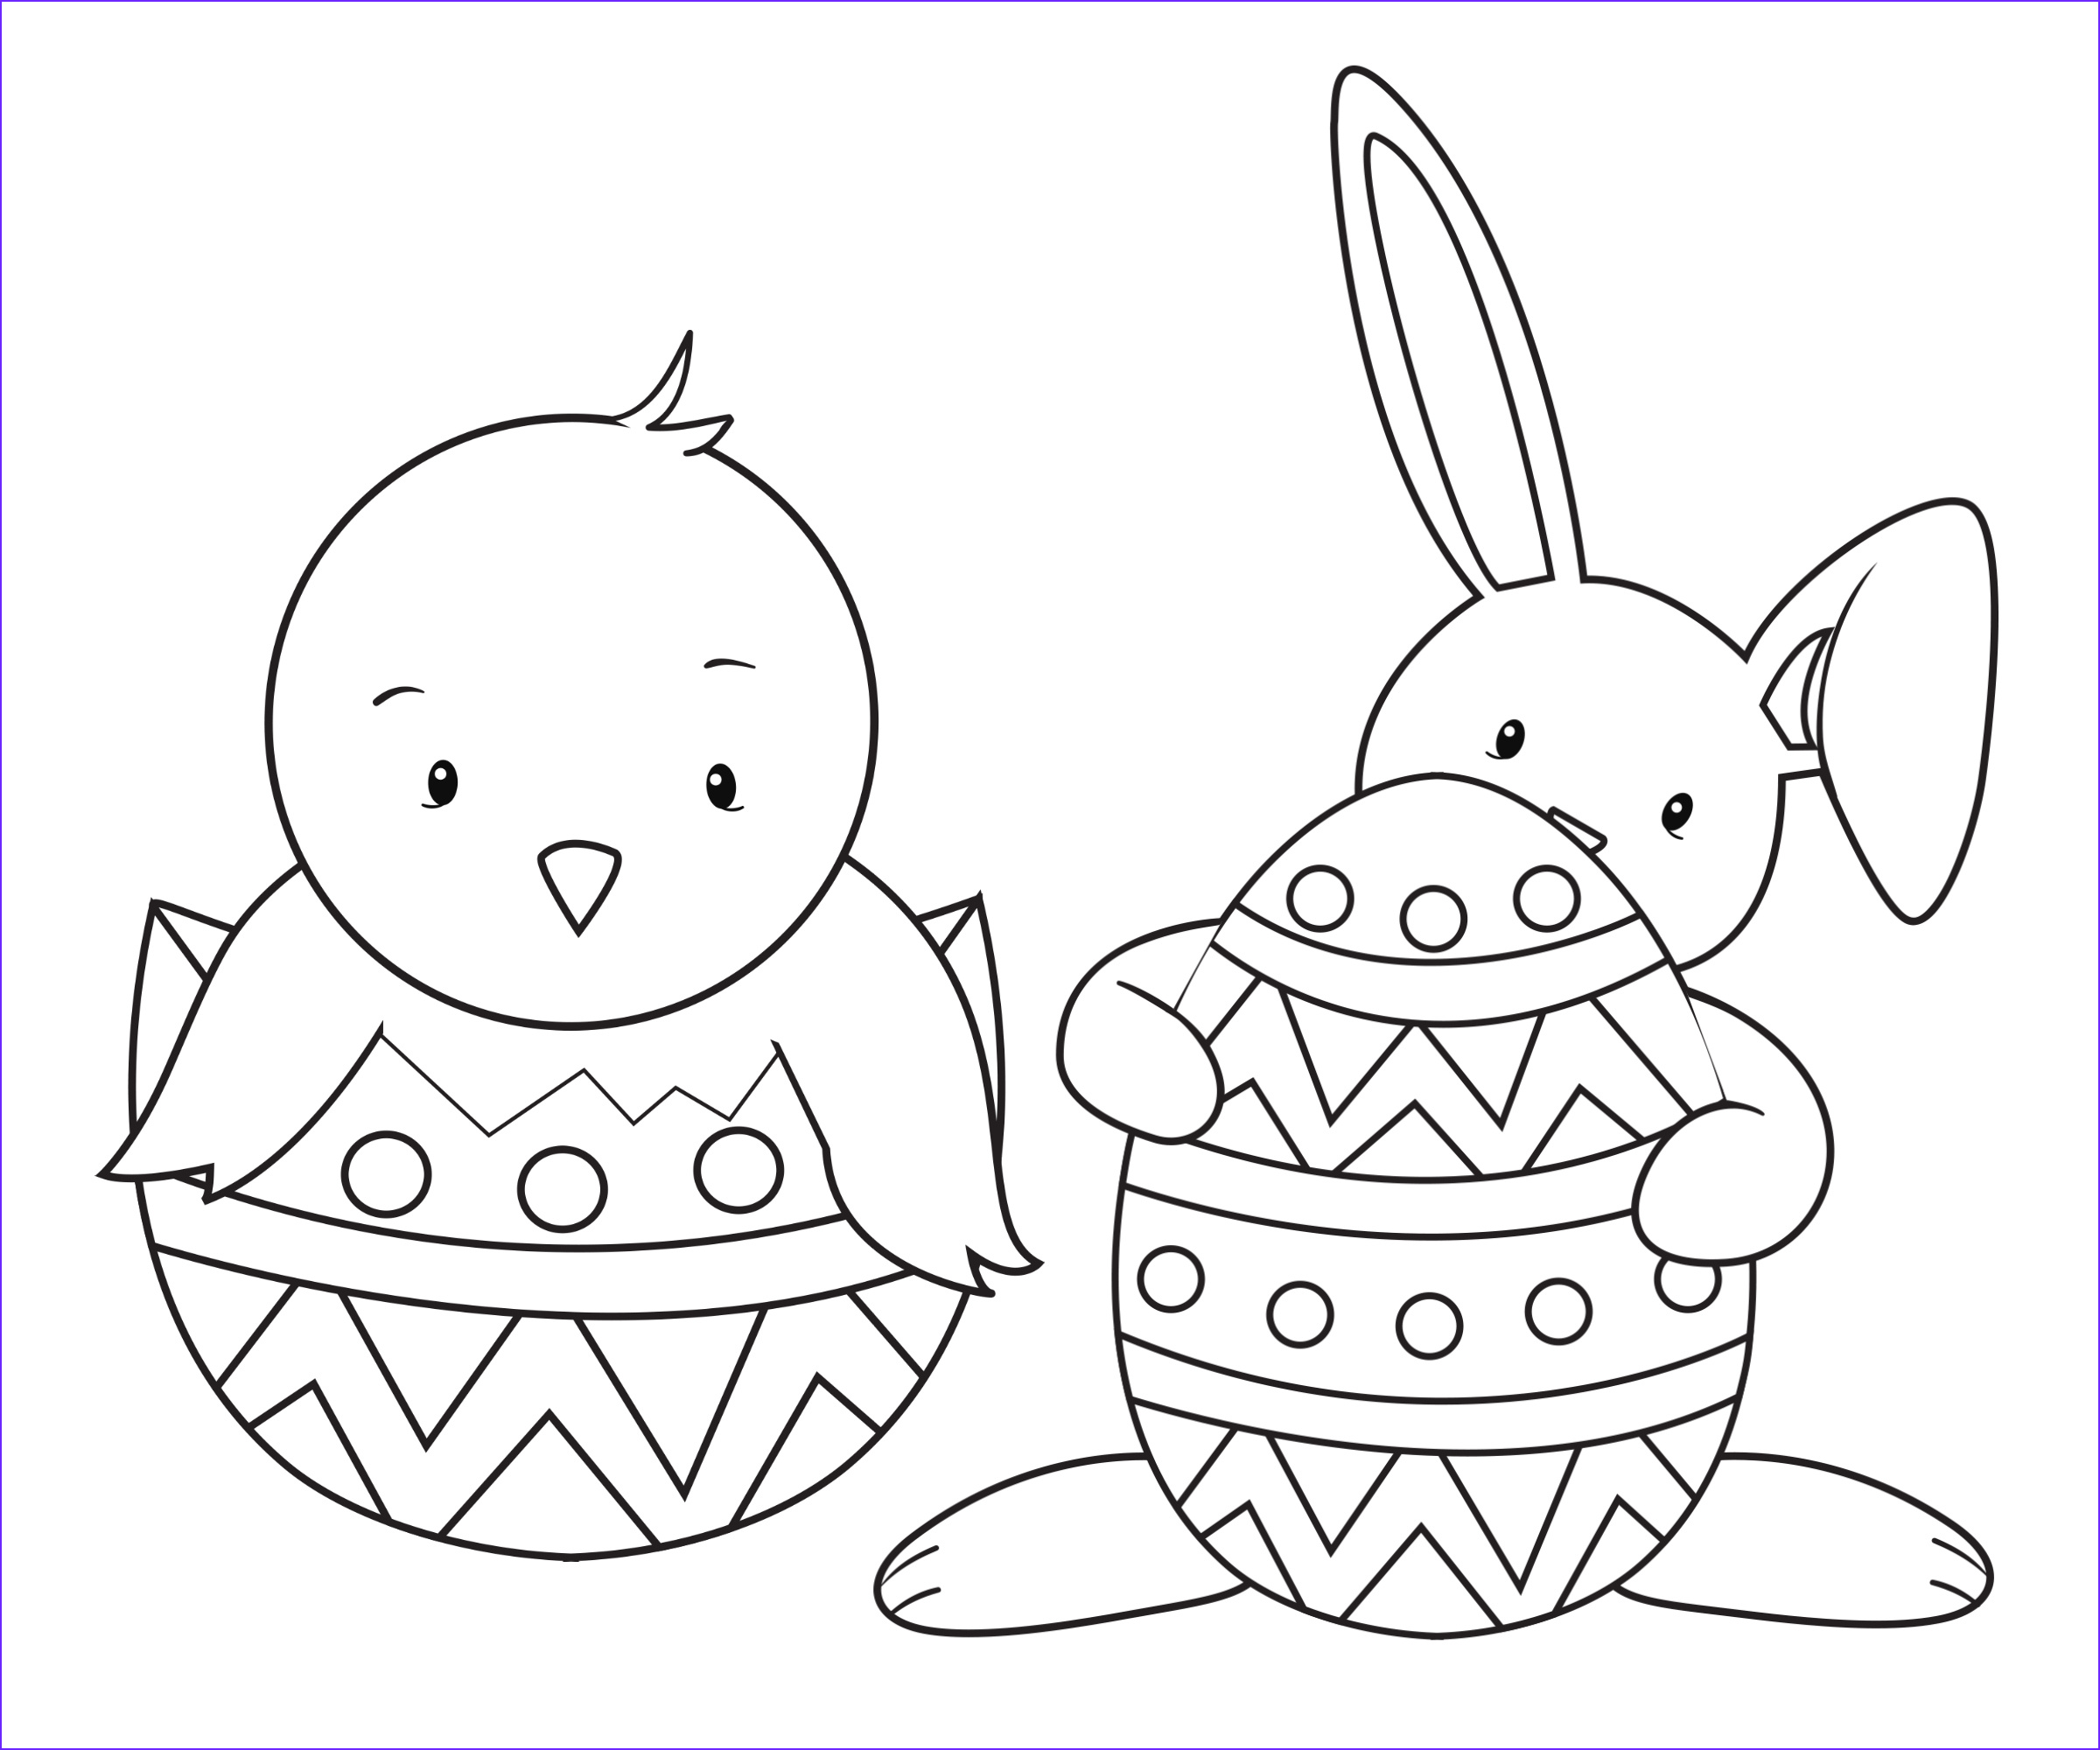 Easter Coloring Images New Photos Easter Coloring Pages for Kids Crazy Little Projects